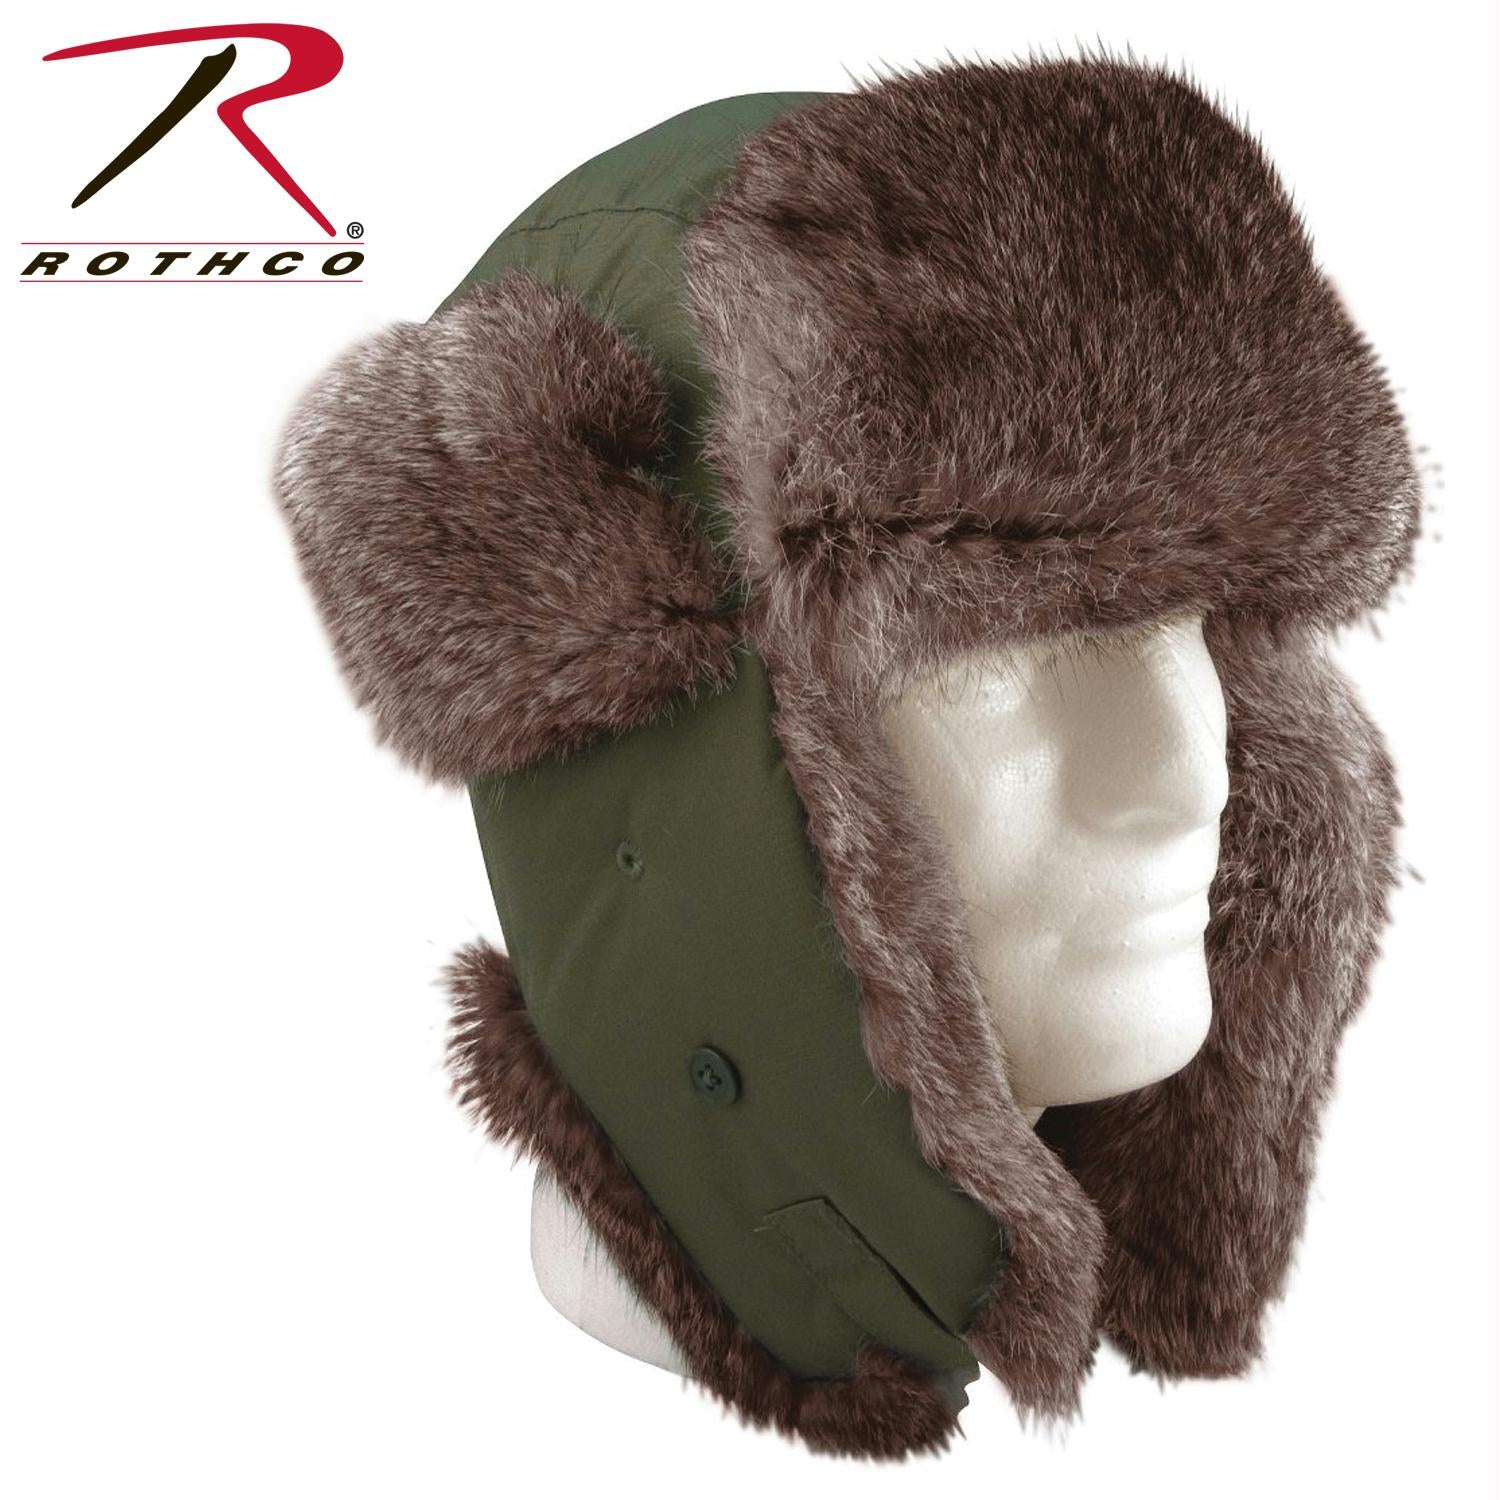 Rothco Fur Flyer's Hat - Olive Drab / 7 3/4